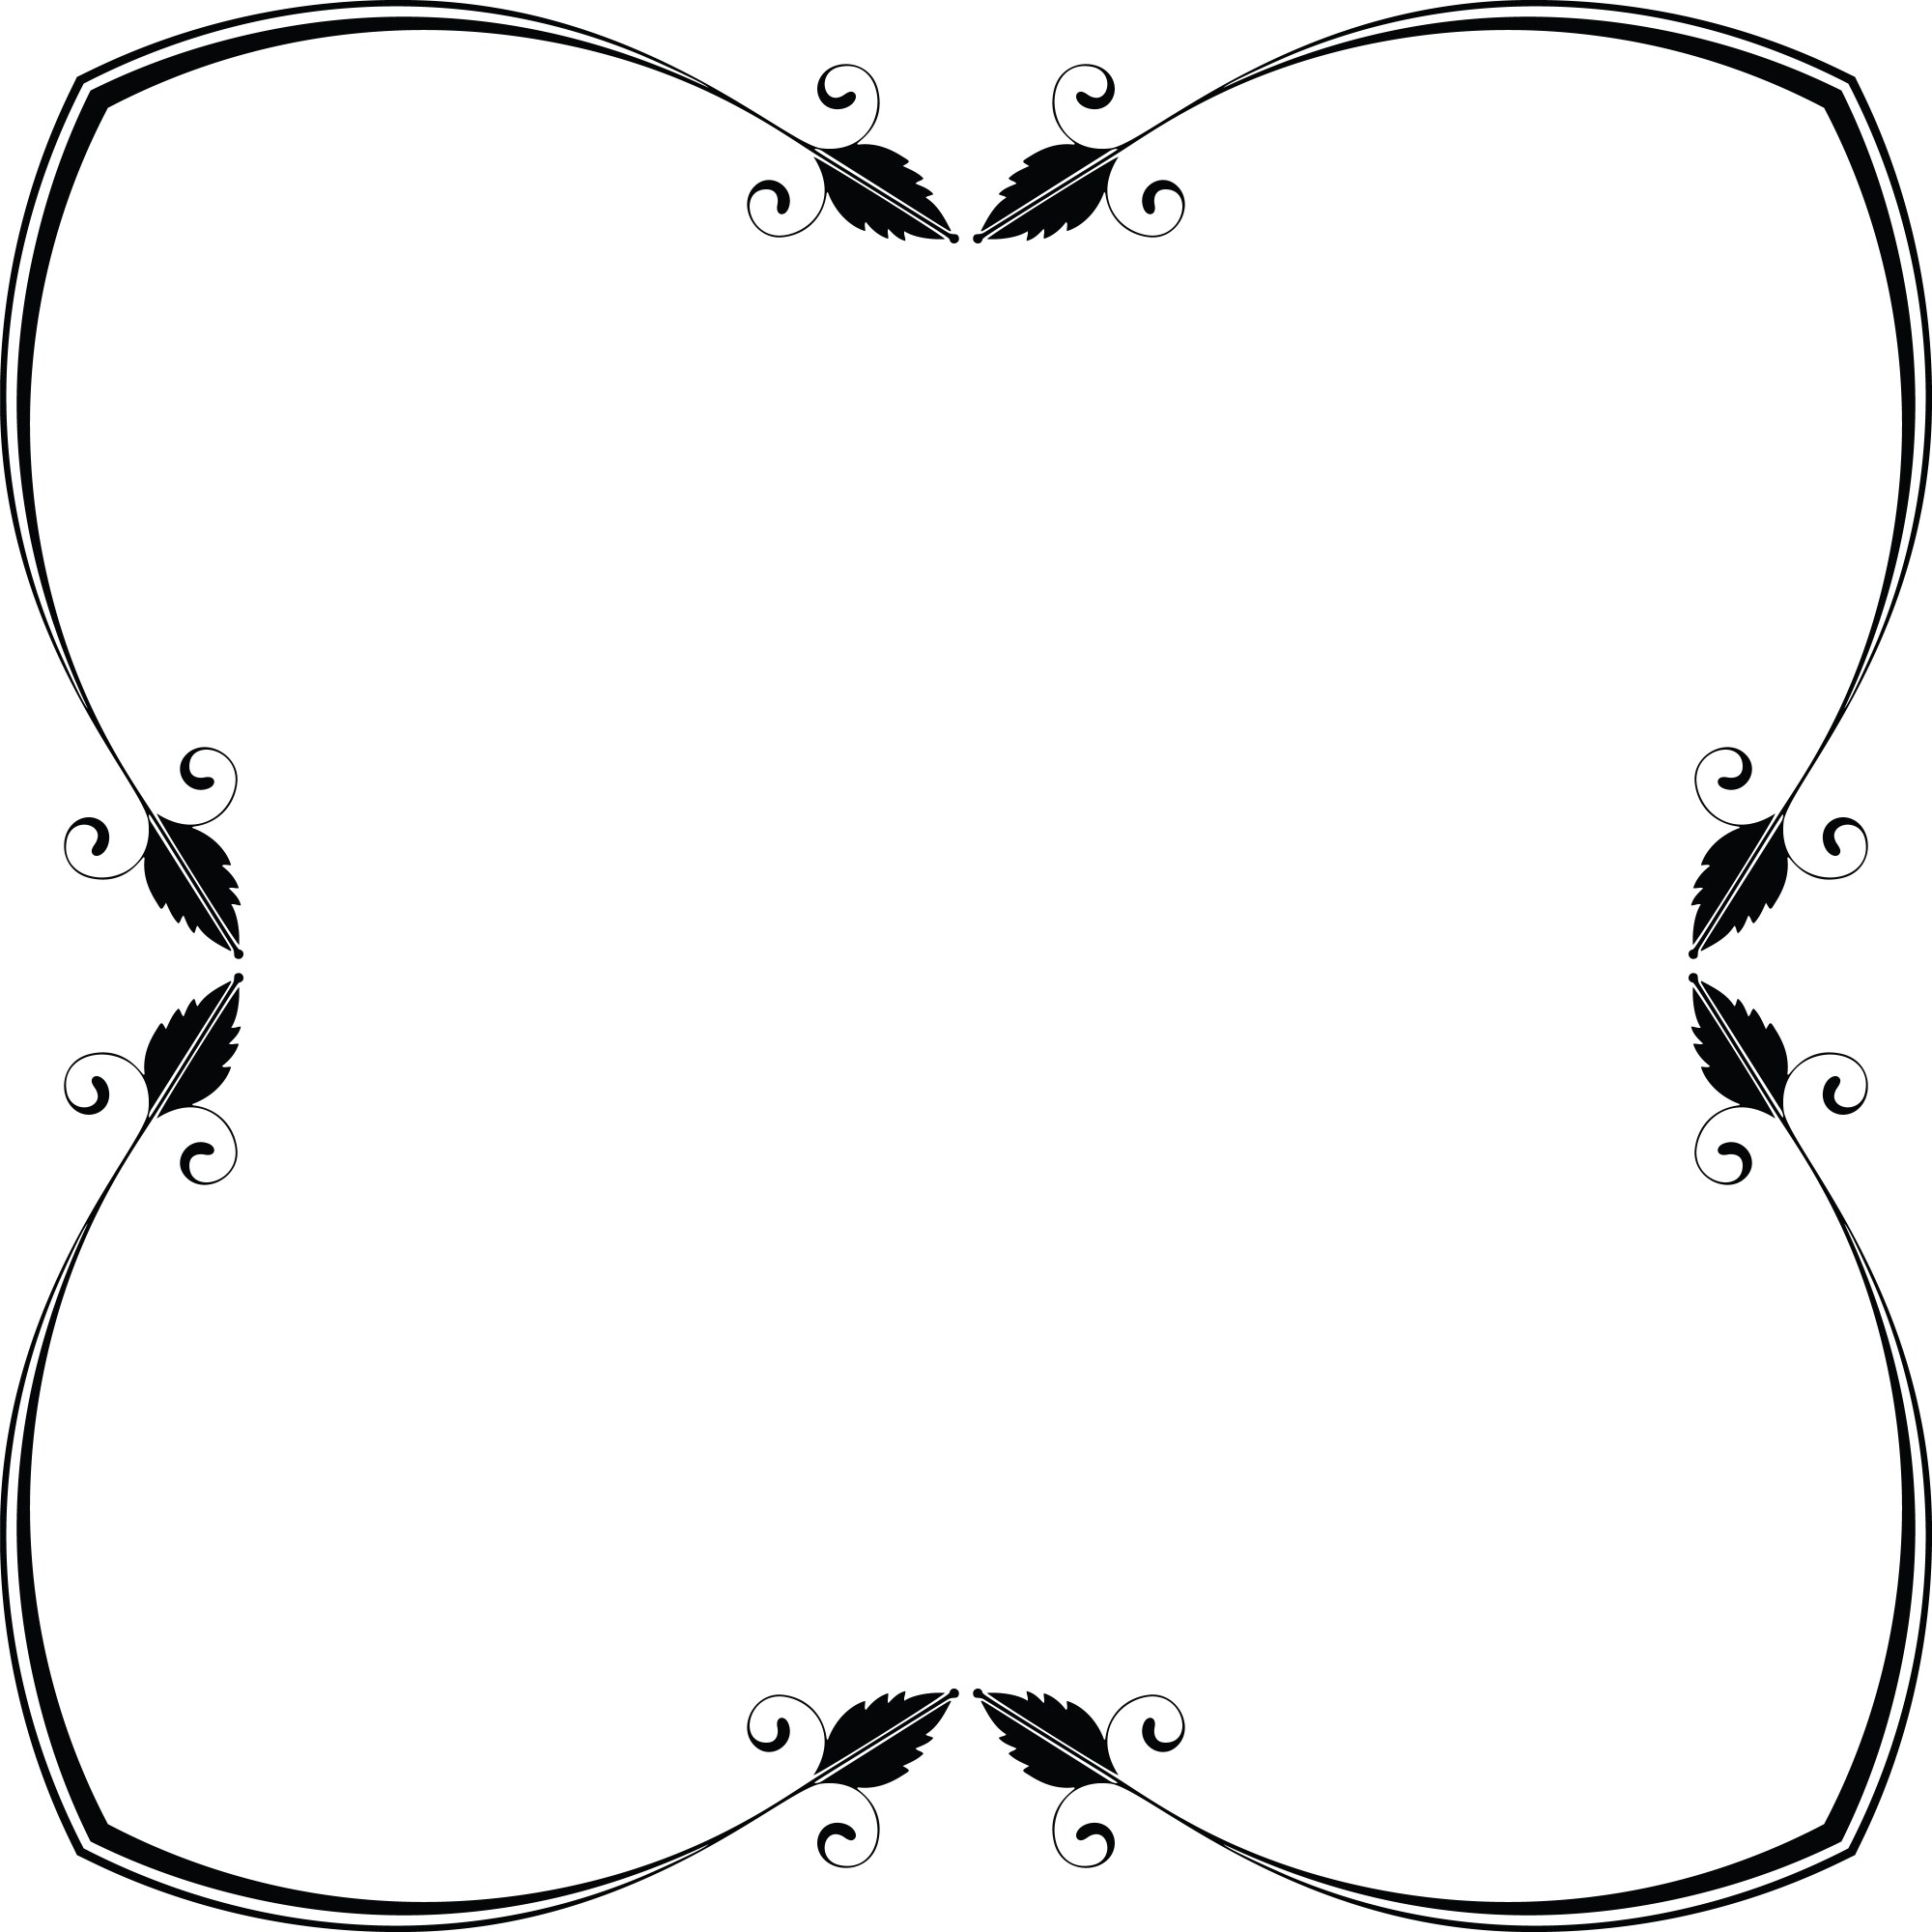 hight resolution of free clipart of a frame design element 00011925